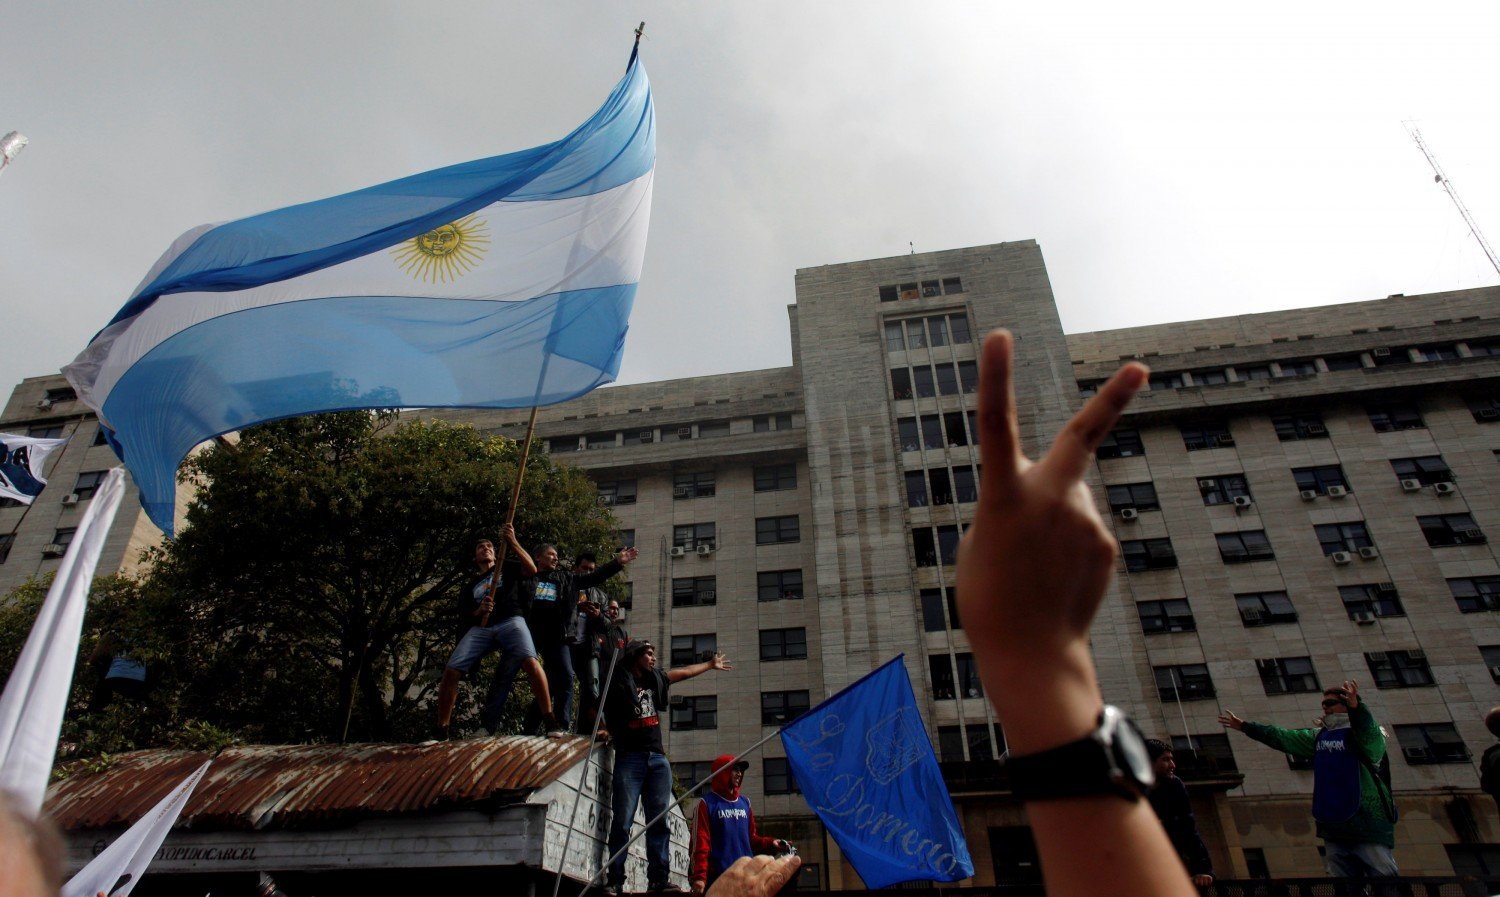 Supporters of former Argentine President Cristina Fernandez de Kirchner wave an Argentine national flag outside a Justice building where she attended court to answer questions over a probe into the sale of U.S. dollar futures contracts at below-market rates by the central bank during her administration, in Buenos Aires, Argentina, April 13, 2016. REUTERS/Martin Acosta